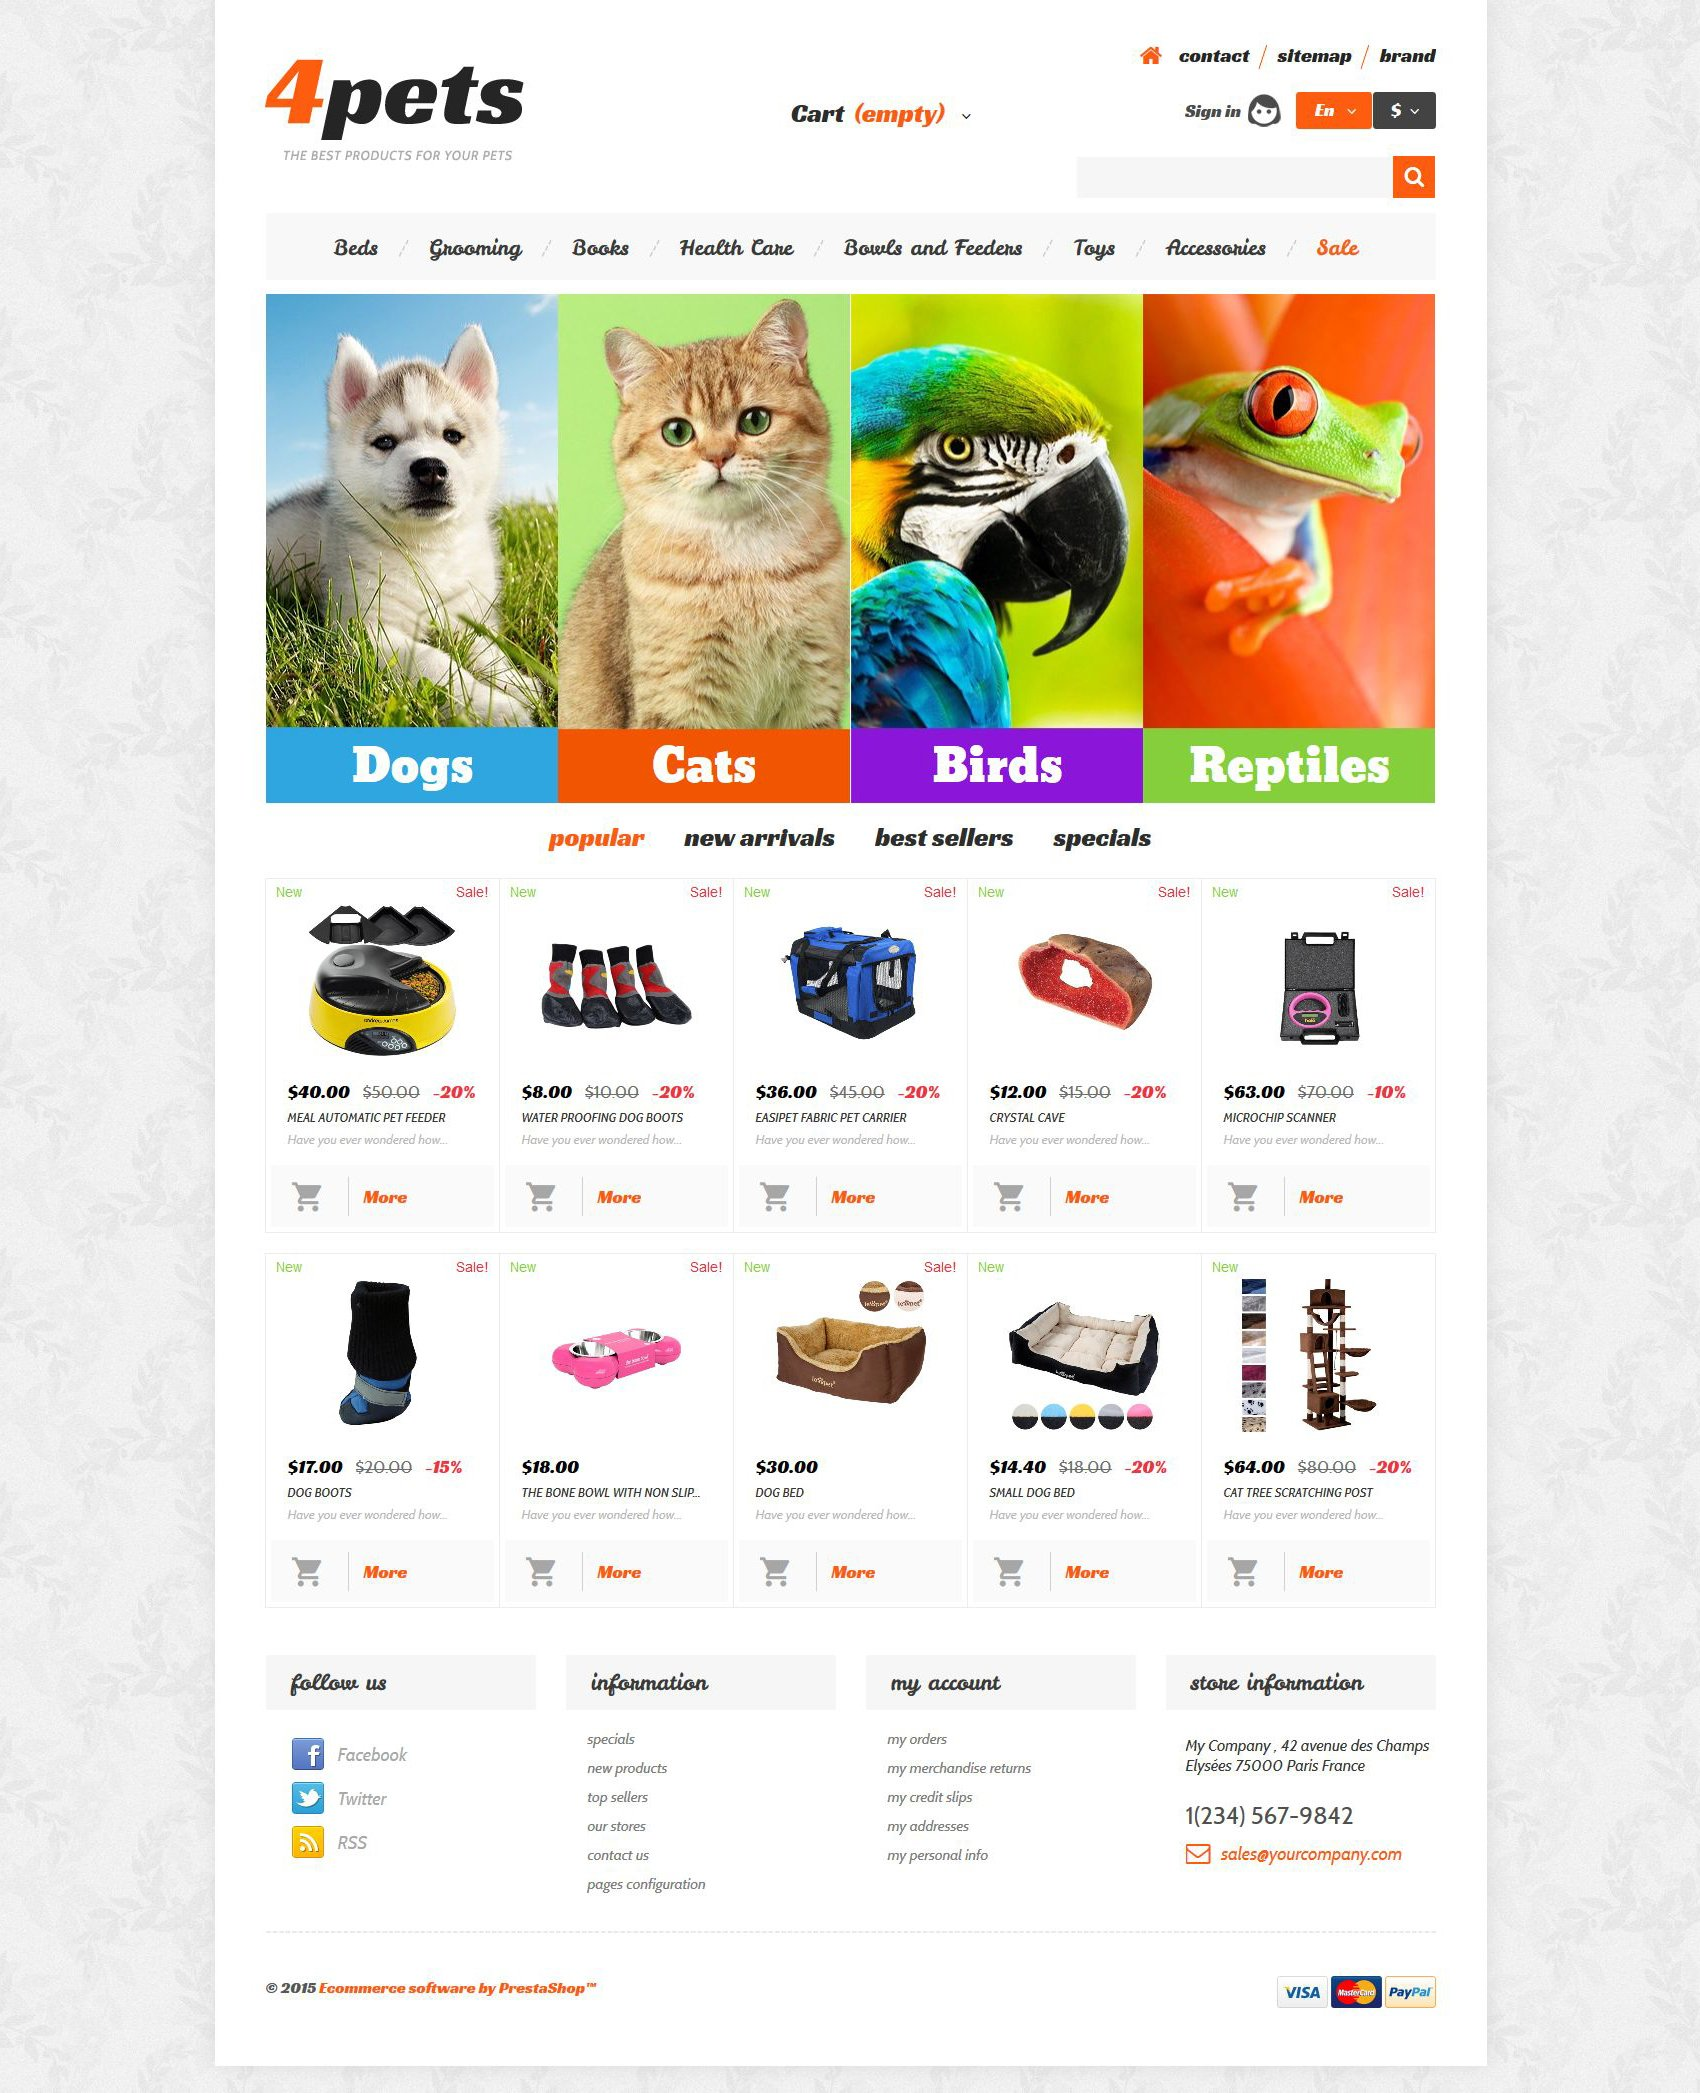 The Pets Store PrestaShop Design 54028, one of the best PrestaShop themes of its kind (animals & pets, most popular), also known as pets store PrestaShop template, online cat club PrestaShop template, kitten clinical PrestaShop template, veterinary PrestaShop template, vet PrestaShop template, tips PrestaShop template, feed PrestaShop template, medicine PrestaShop template, staff PrestaShop template, services PrestaShop template, breed PrestaShop template, age PrestaShop template, color PrestaShop template, accommodation PrestaShop template, adaptable PrestaShop template, pet PrestaShop template, apparel PrestaShop template, bed PrestaShop template, dishes PrestaShop template, bowl PrestaShop template, bone PrestaShop template, cleanup PrestaShop template, collar PrestaShop template, flea PrestaShop template, tick PrestaShop template, grooming PrestaShop template, supplies PrestaShop template, vitamins PrestaShop template, recommendation PrestaShop template, health PrestaShop template, leash and related with pets store, online cat club, kitten clinical, veterinary, vet, tips, feed, medicine, staff, services, breed, age, color, accommodation, adaptable, pet, apparel, bed, dishes, bowl, bone, cleanup, collar, flea, tick, grooming, supplies, vitamins, recommendation, health, leash, etc.